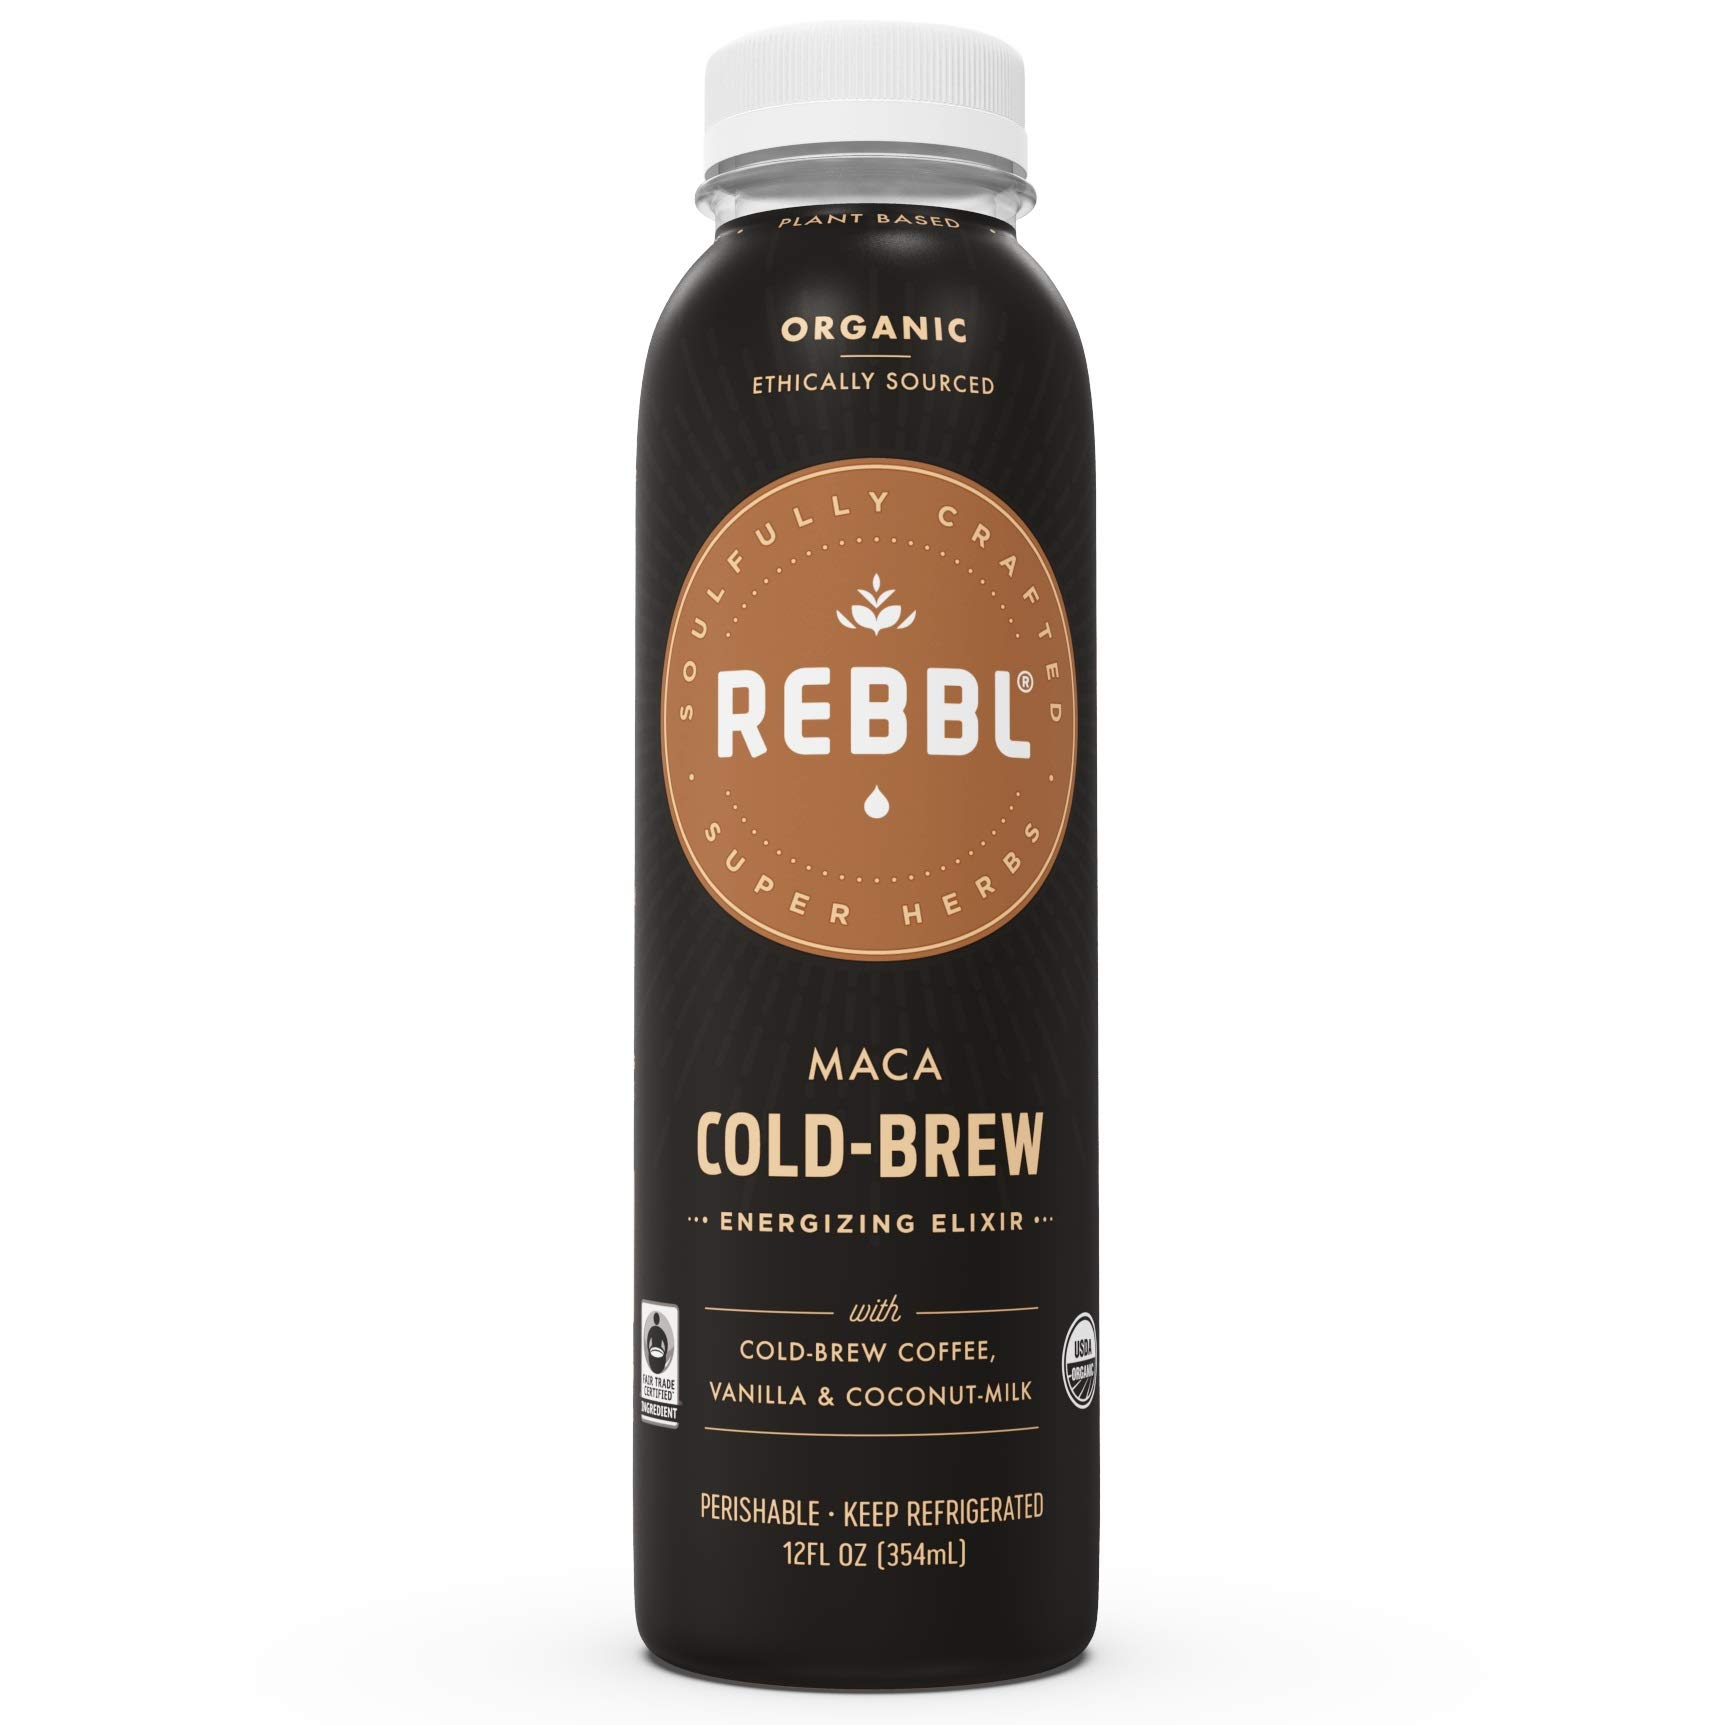 REBBL Super Herb Powered Elixirs | Maca Cold Brew Coffee Elixir 12 Pack | 12 Fl Oz | Gluten Free, Organic, Non GMO, Vegan | 750mg 4: 1 Maca Extract, 140mg Caffeine